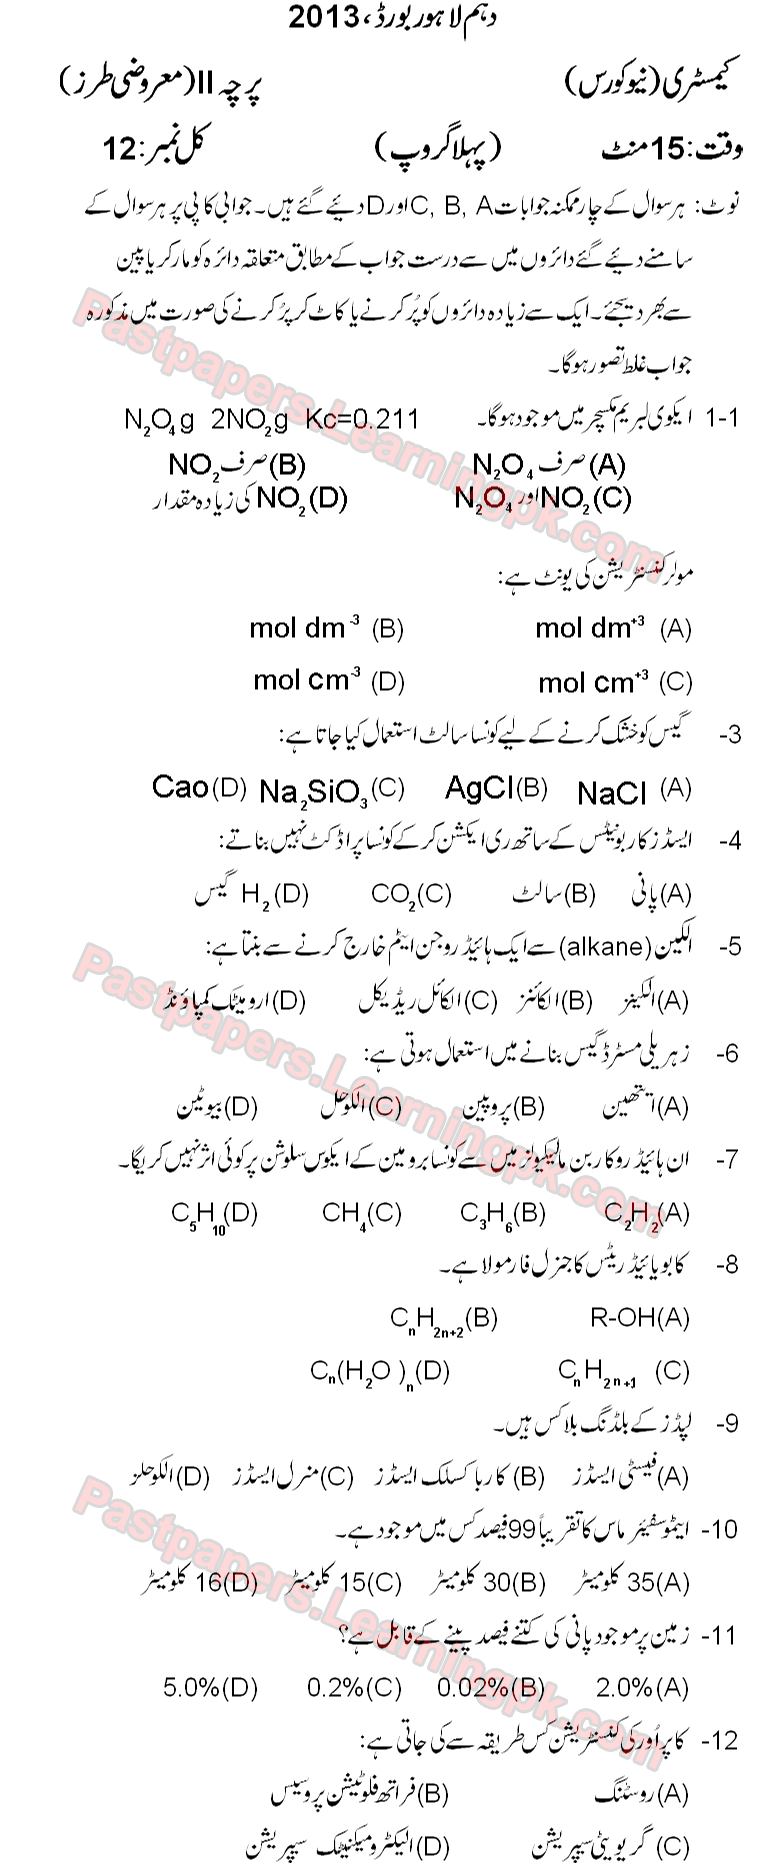 lahore board chemistry past paper 2013 10th class old guess paper1 Lahore Board Chemistry Past Paper 2013 10th Class Old Guess Paper